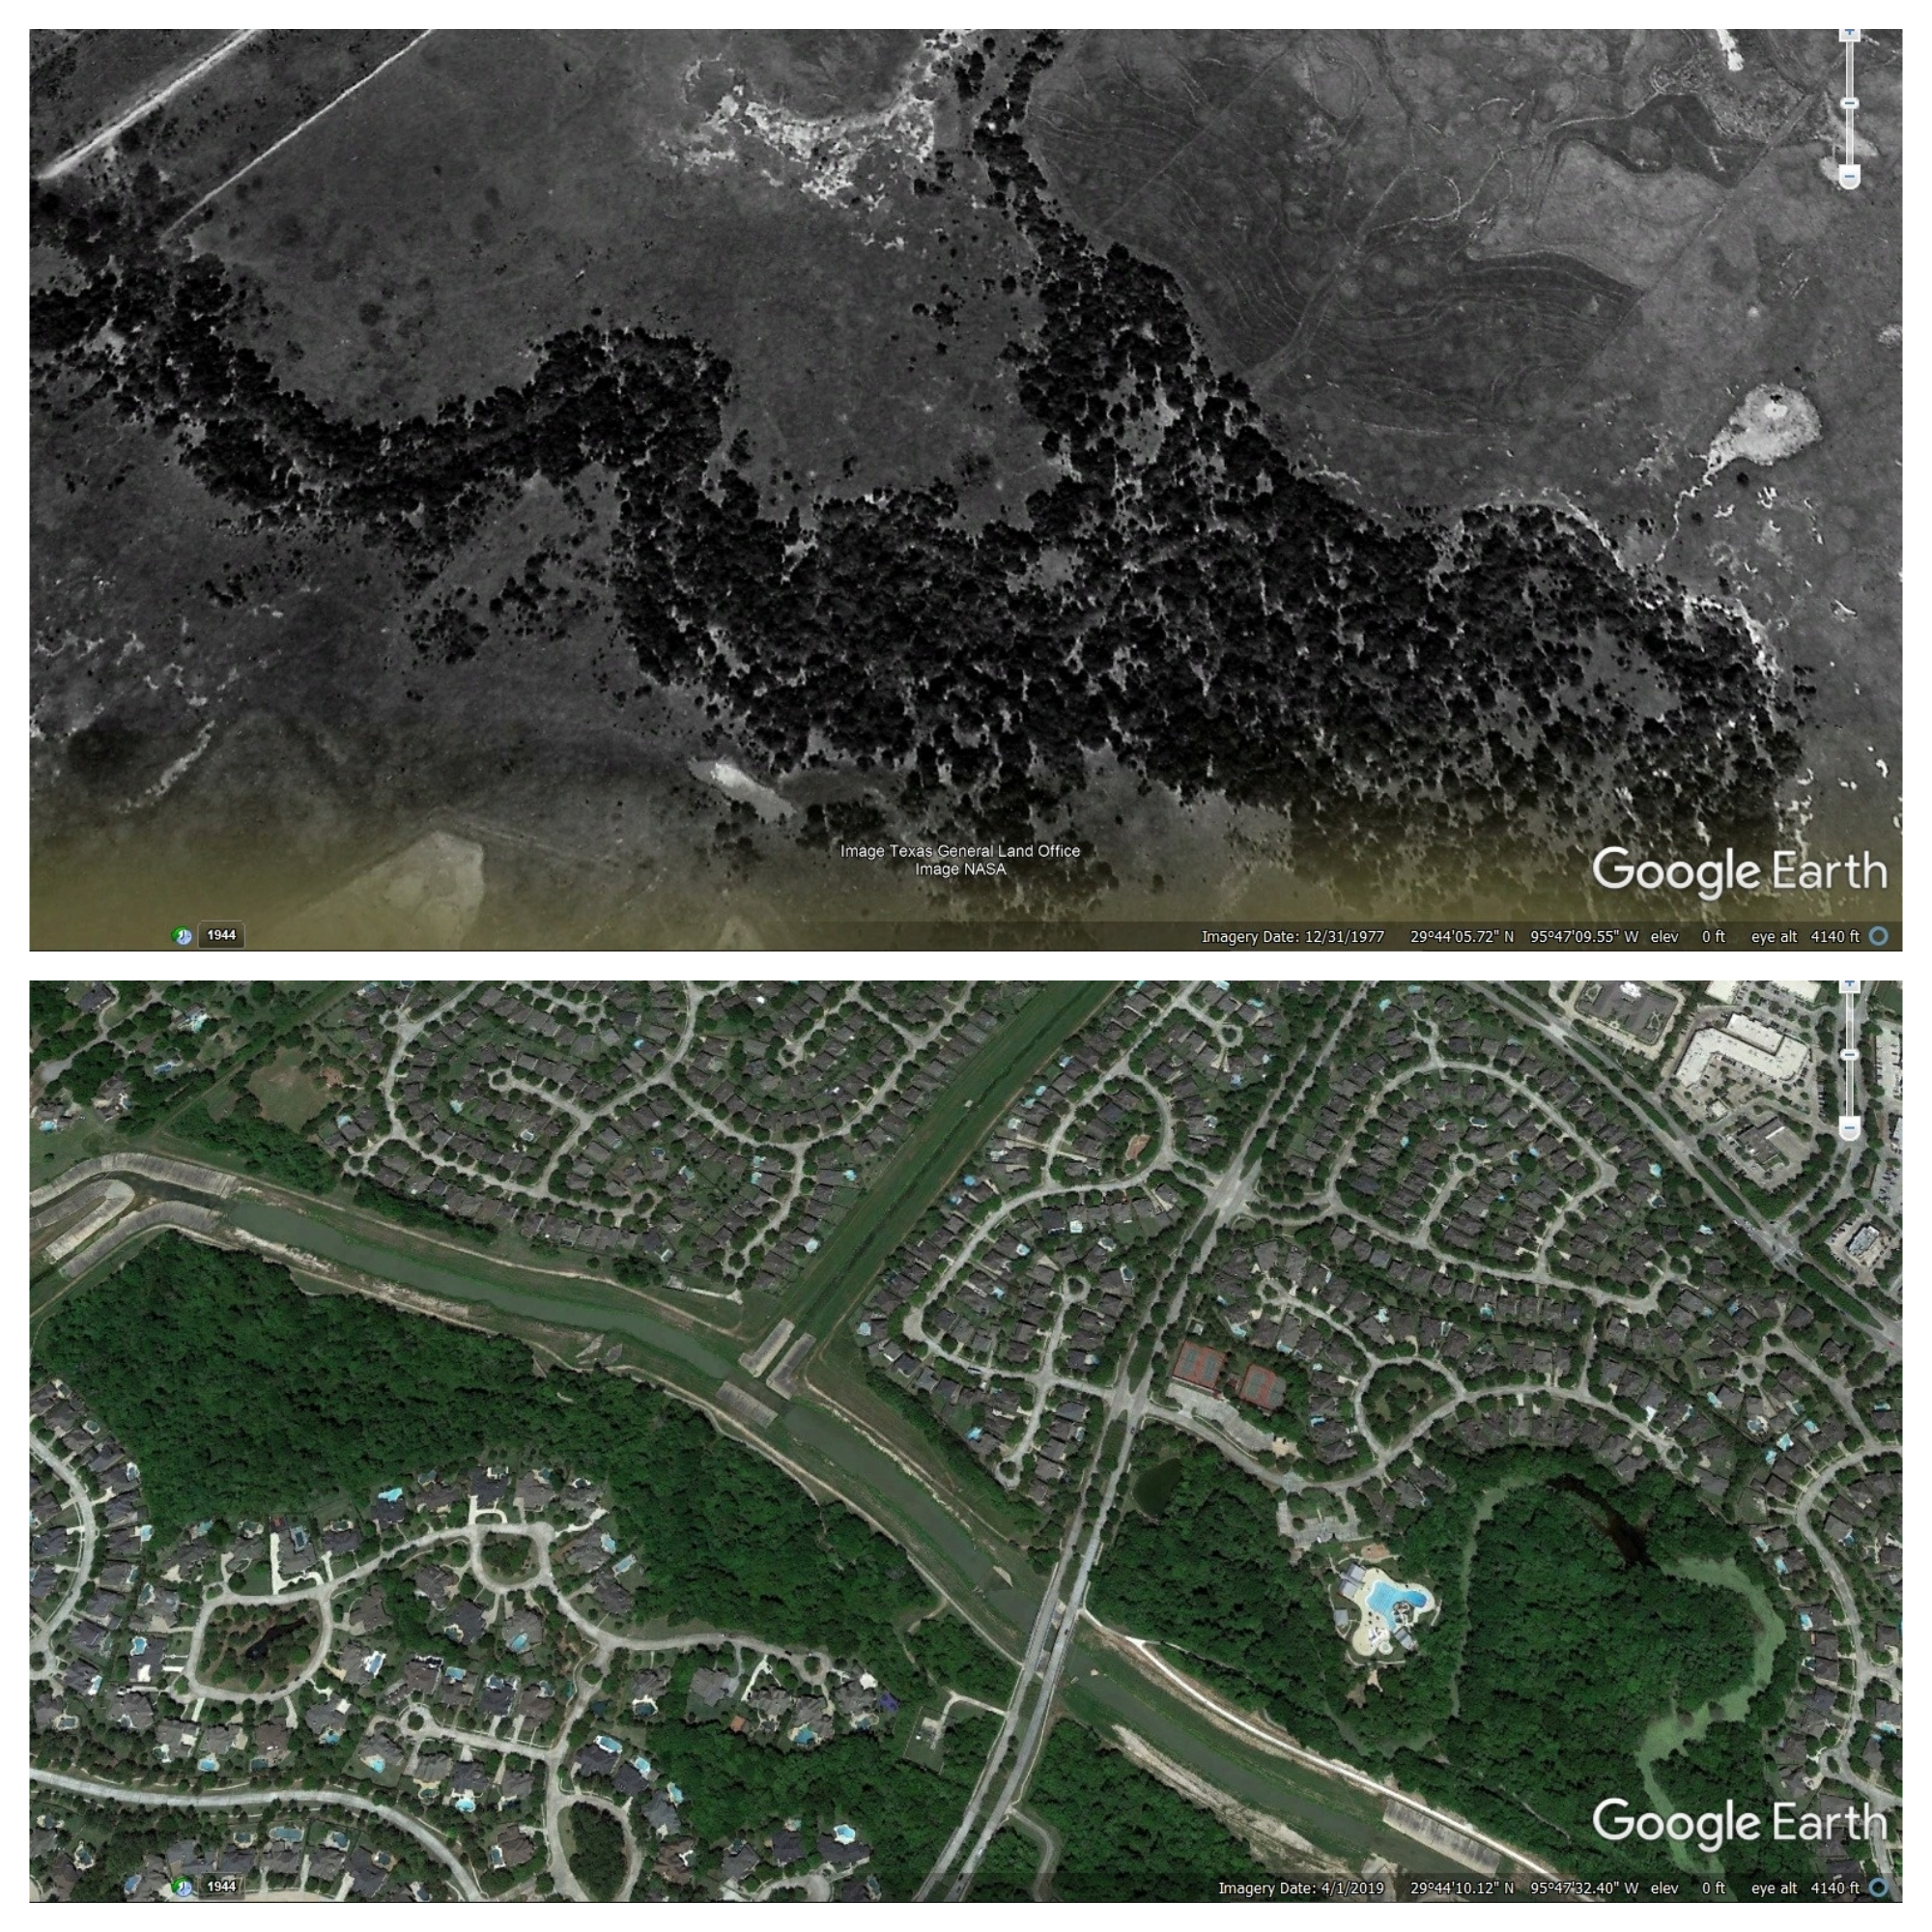 Illustrative photos for comparison from Google Earth historical records, show the significant change that has occured how much it has changed.